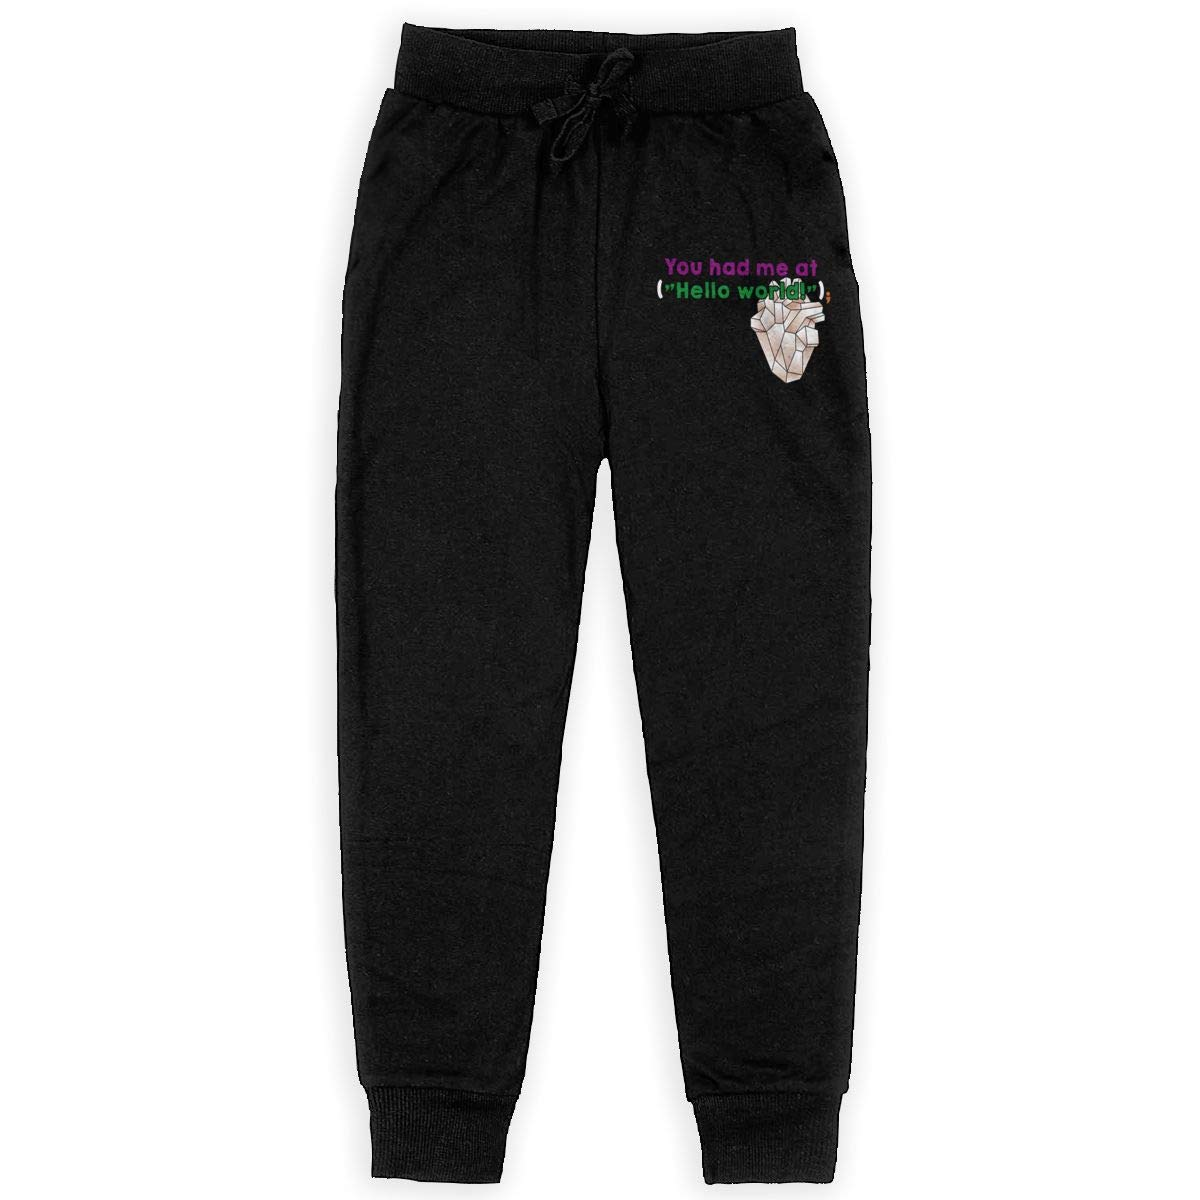 Dunpaiaa You Had Me Boys Sweatpants,Joggers Sport Training Pants Trousers Black